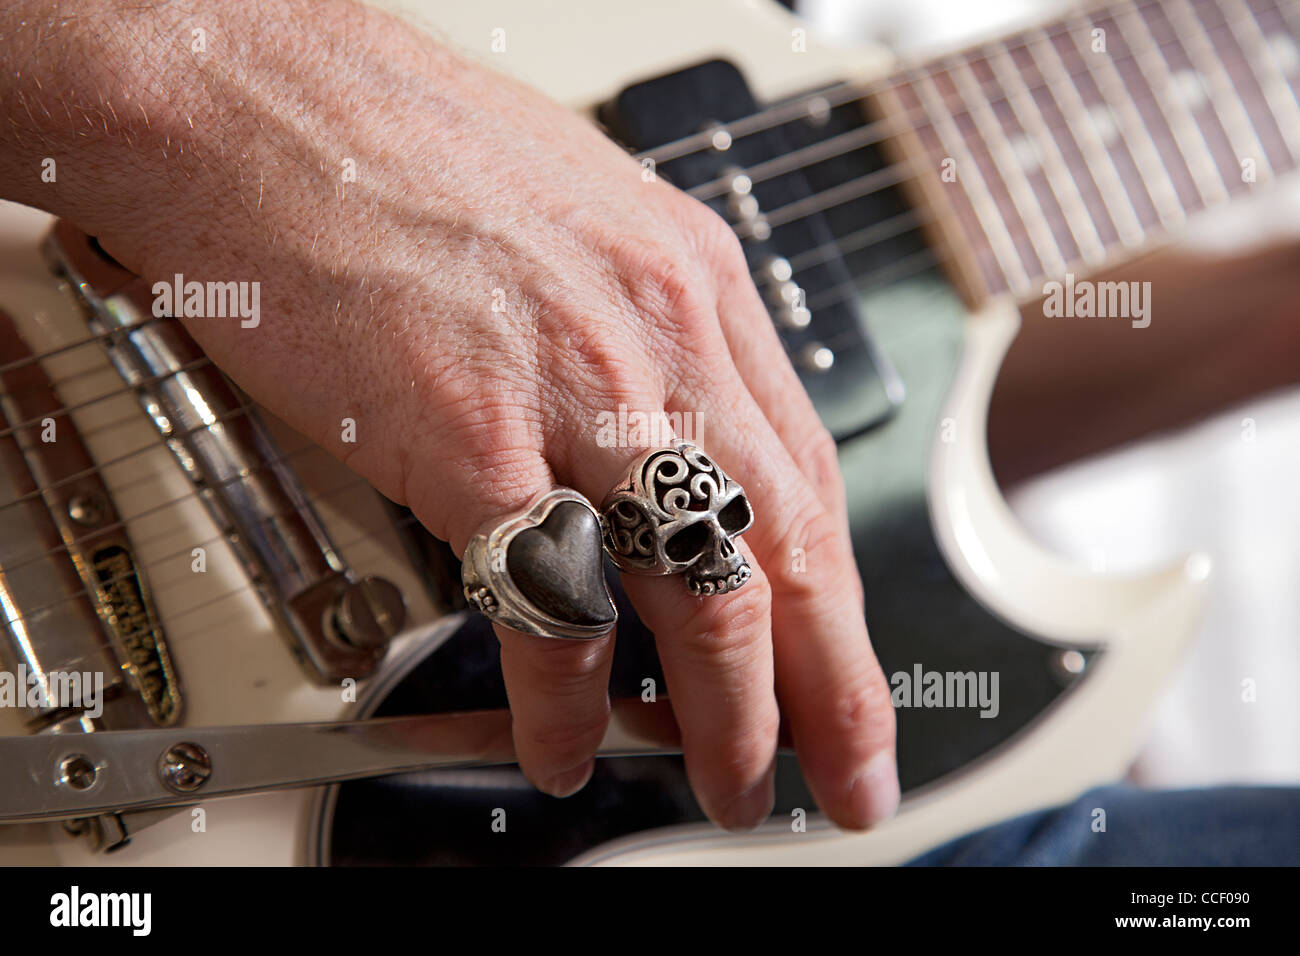 Close-up of mid adult man's fingers with rings playing guitar - Stock Image